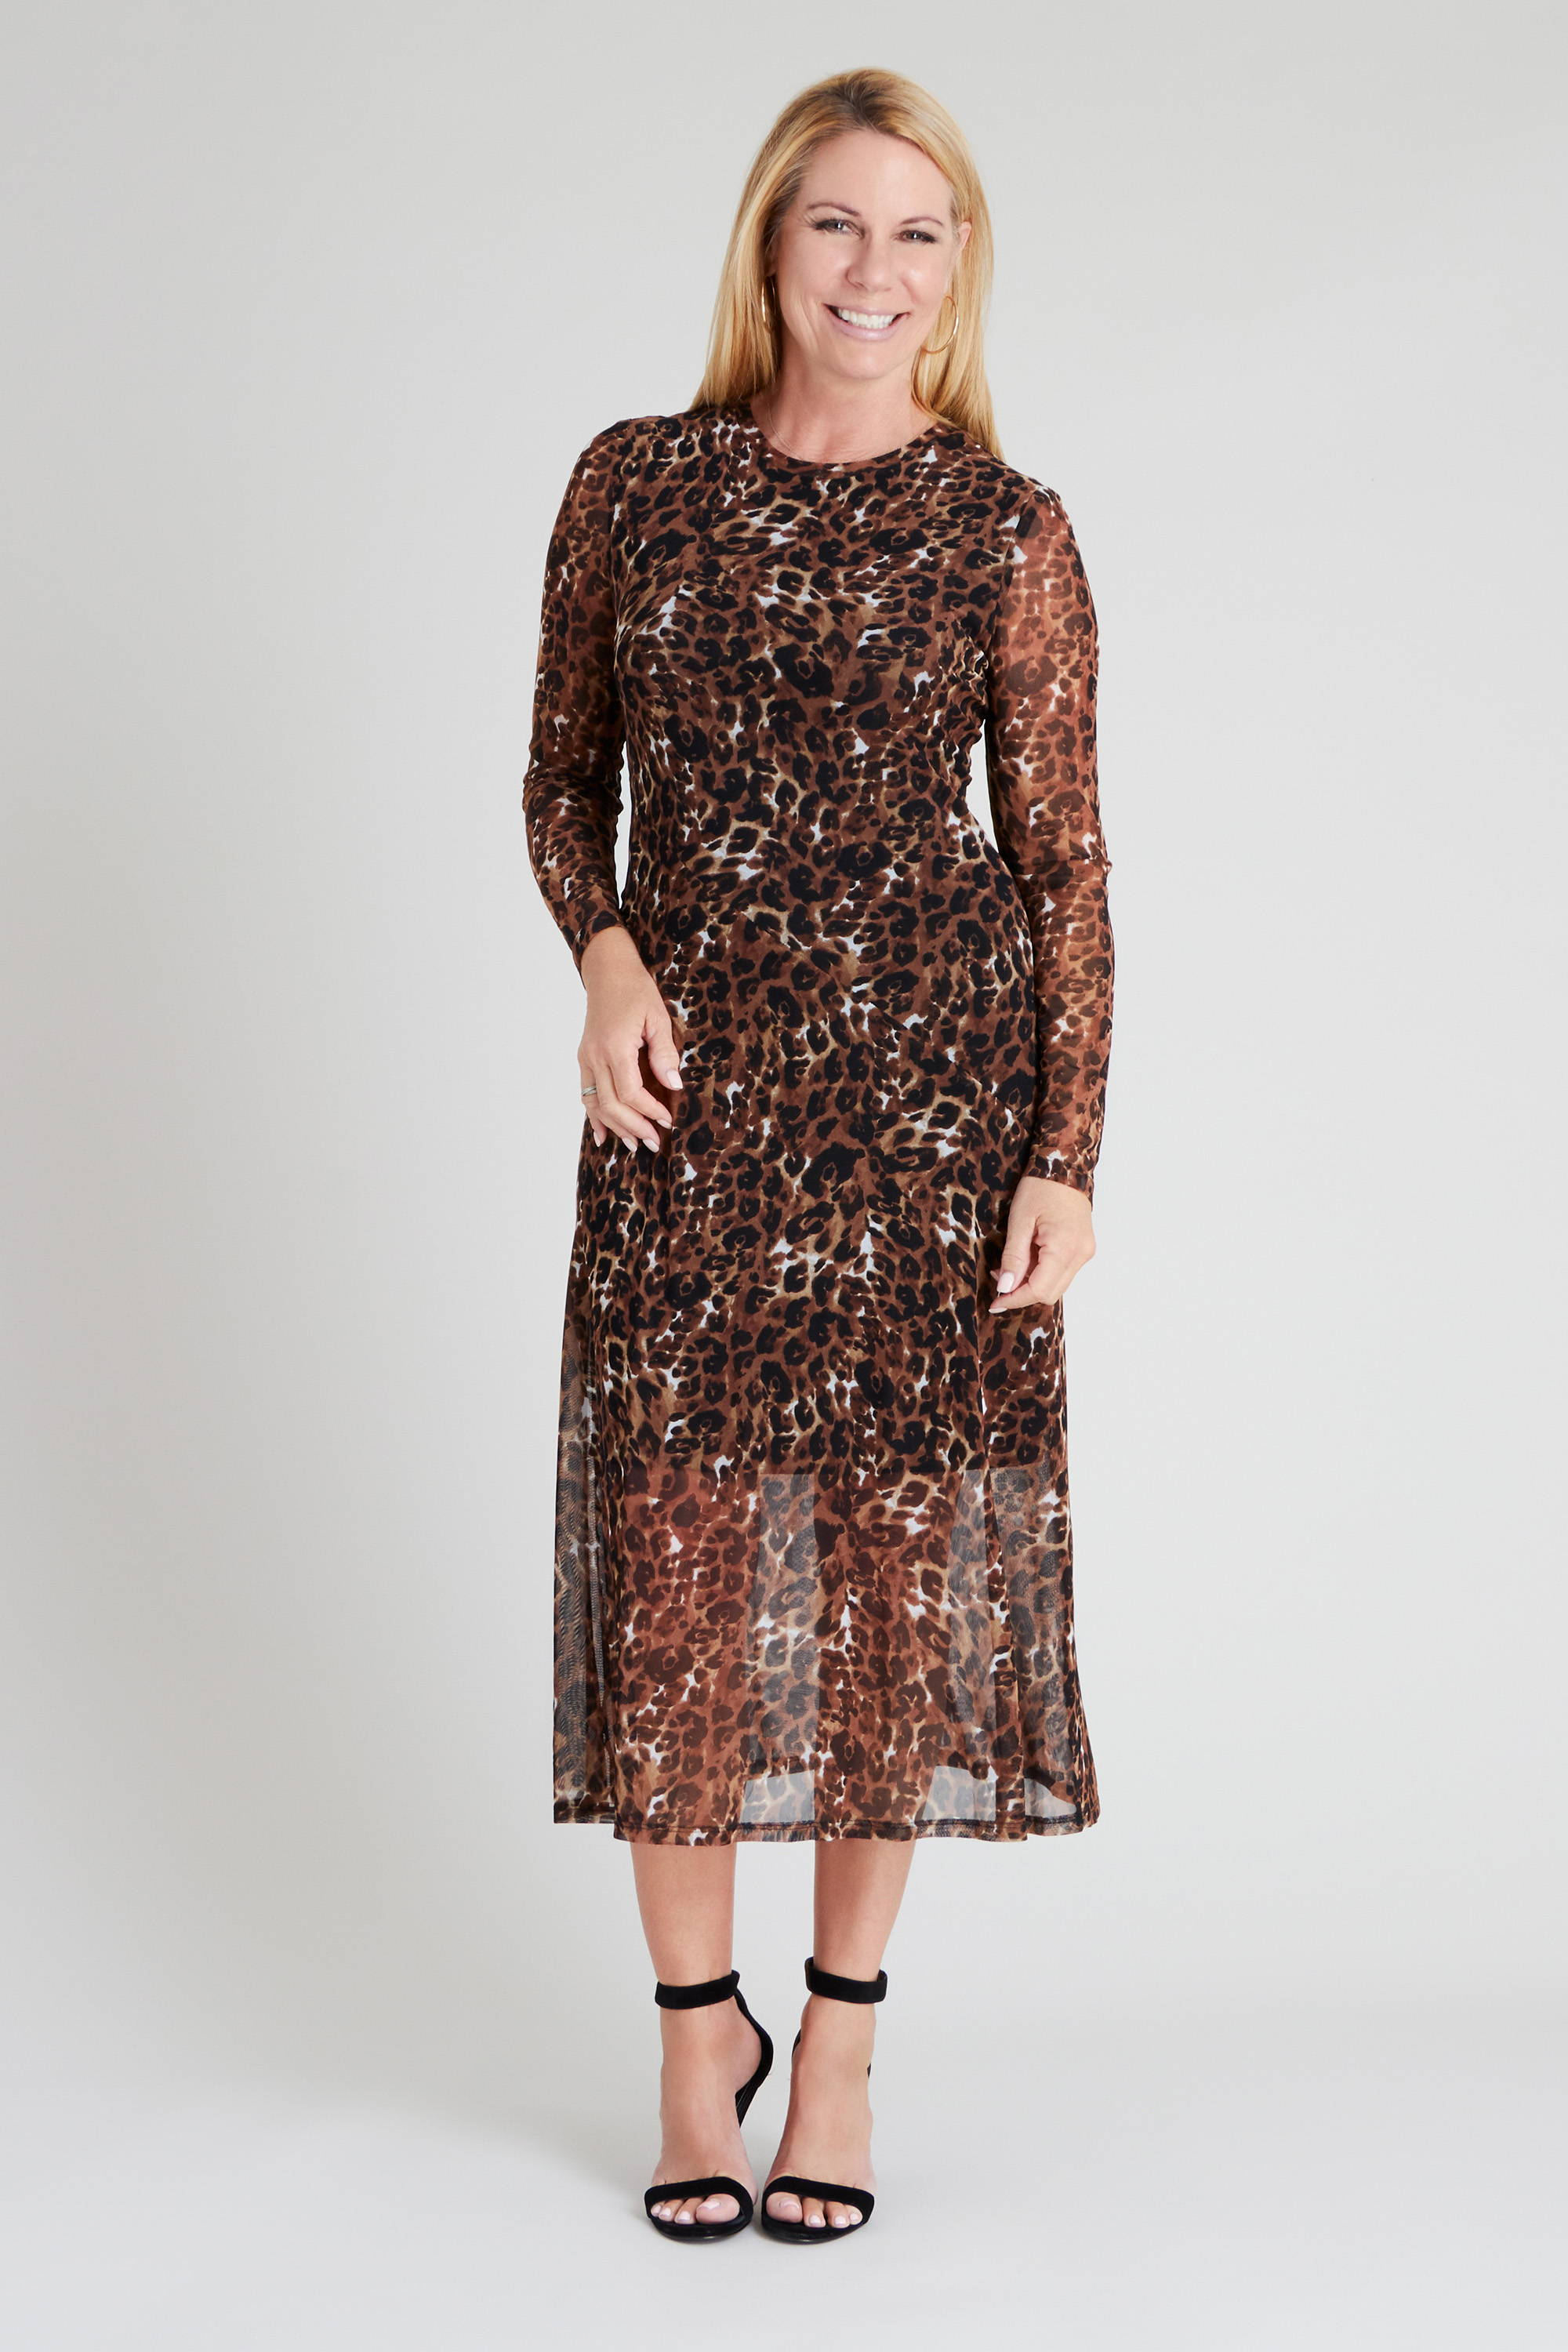 blonde woman wearing neutral cheetah print connected apparel long sleeve mesh dress